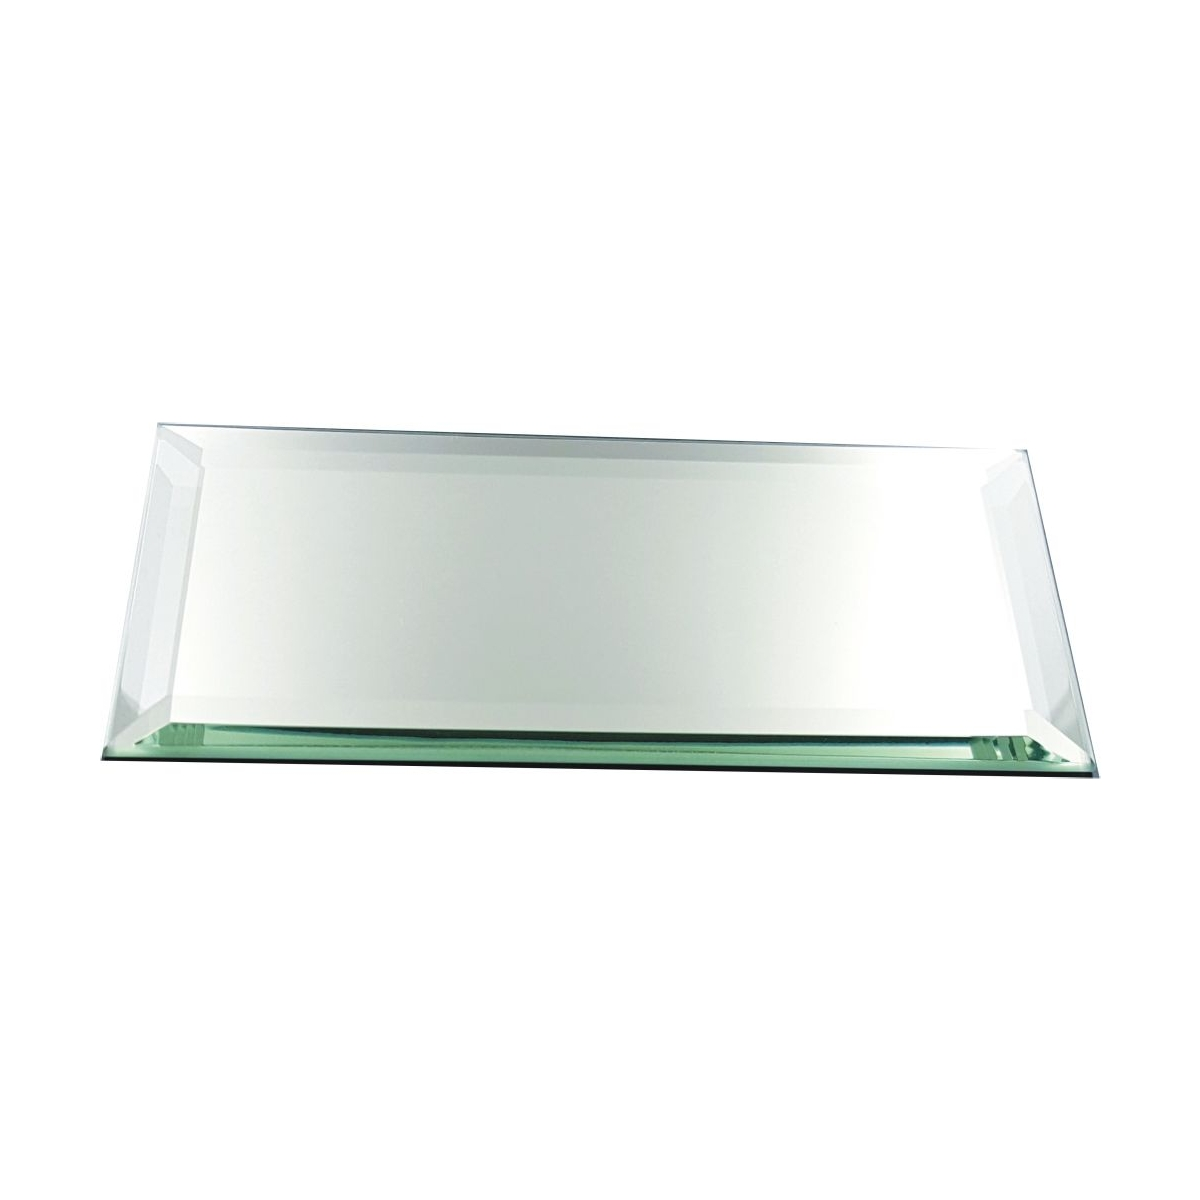 Rectangle Mirrors Collectibles or Decorative Purpose, 3MM Bevel